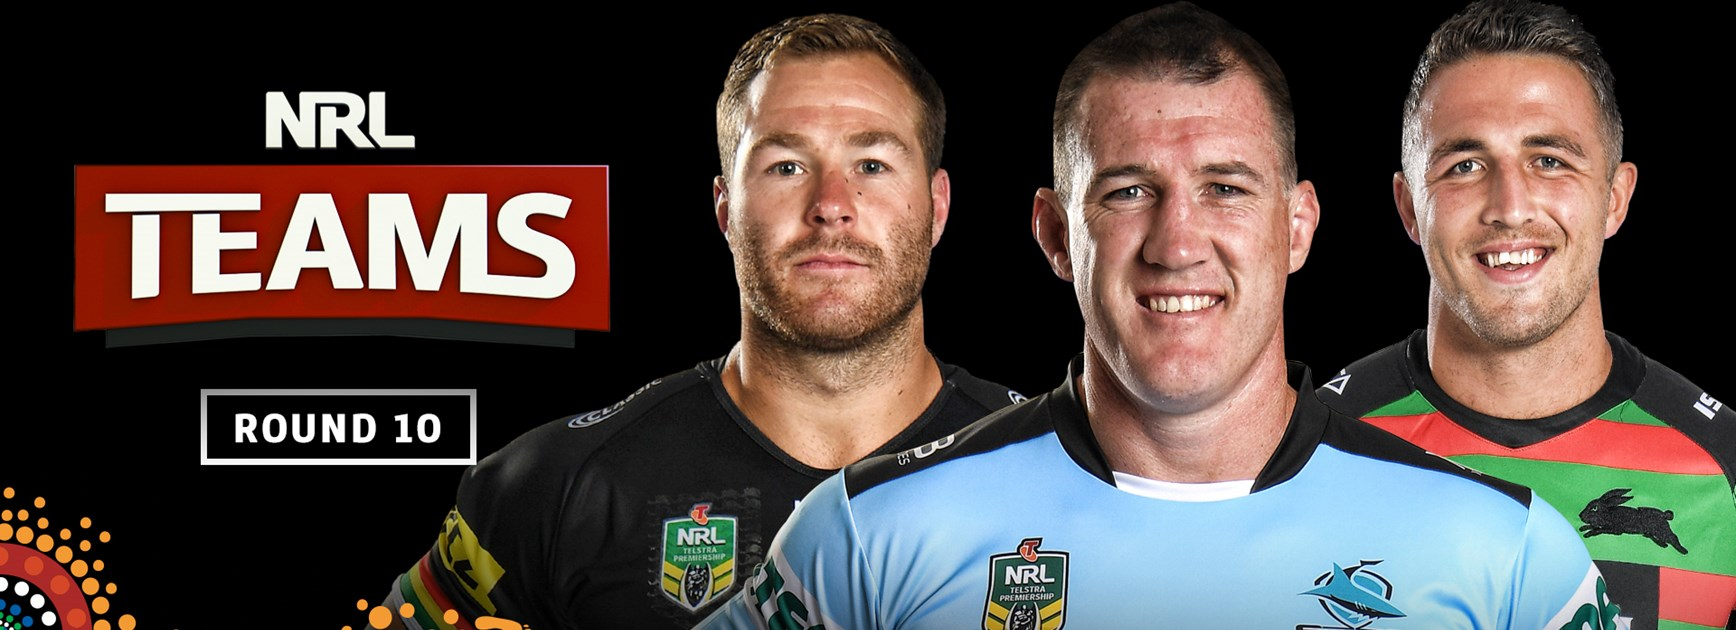 Watch: NRL Teams - Round 10